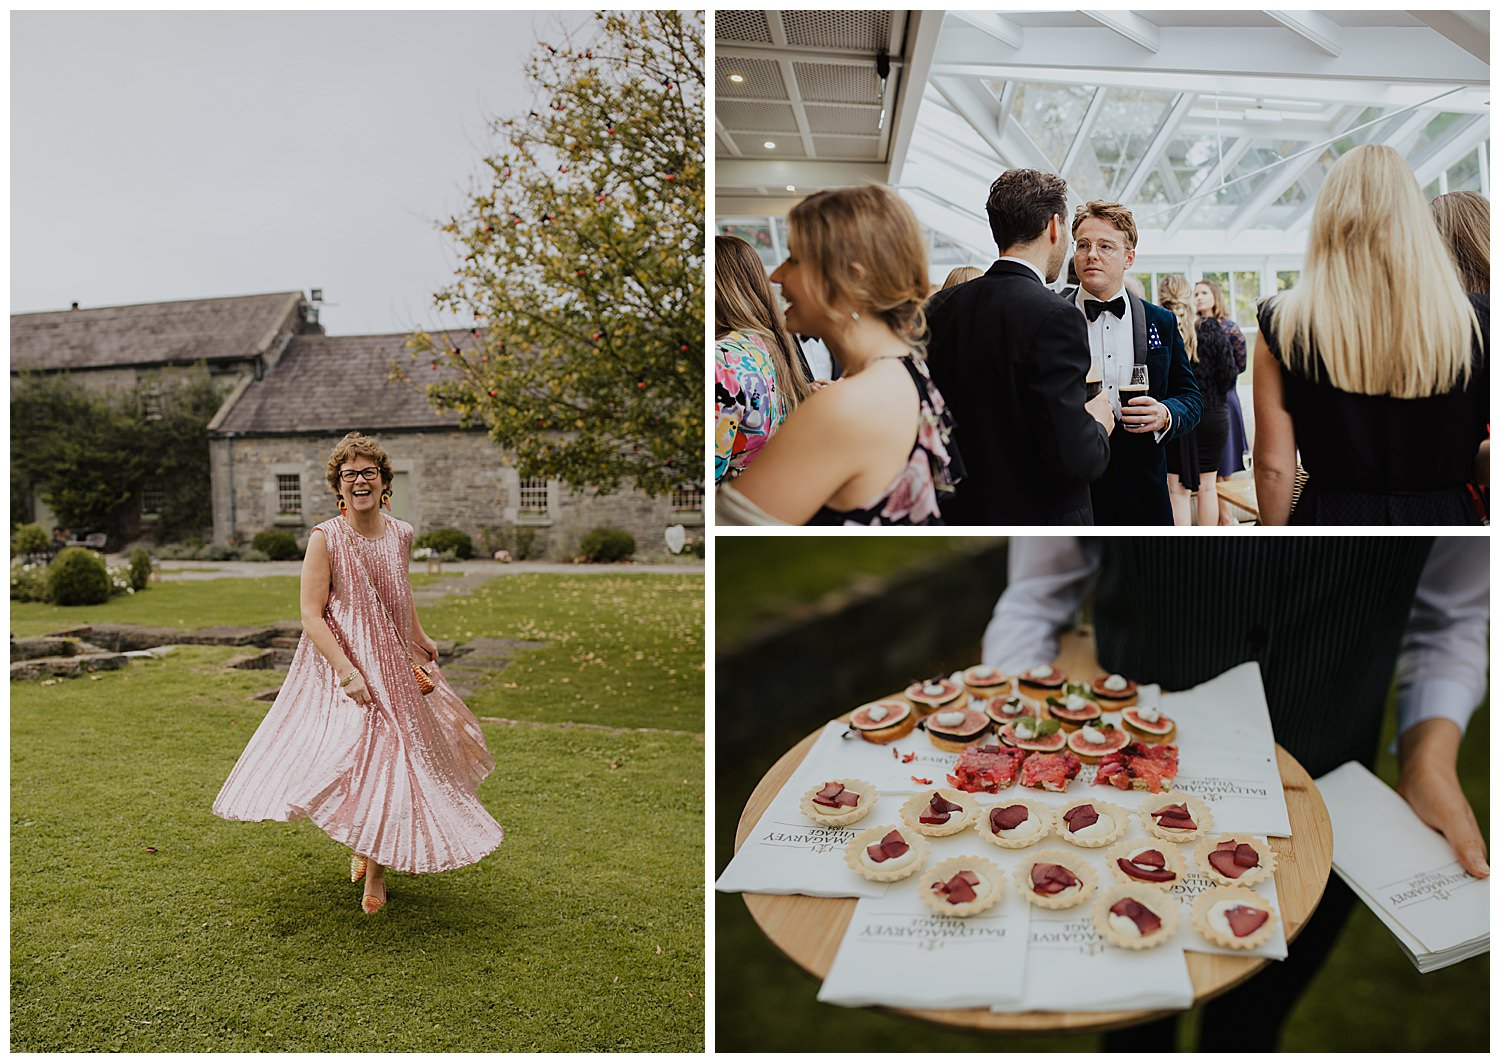 a+s_ballymagarvey_village_wedding_photographer_livia_figueiredo_41.jpg